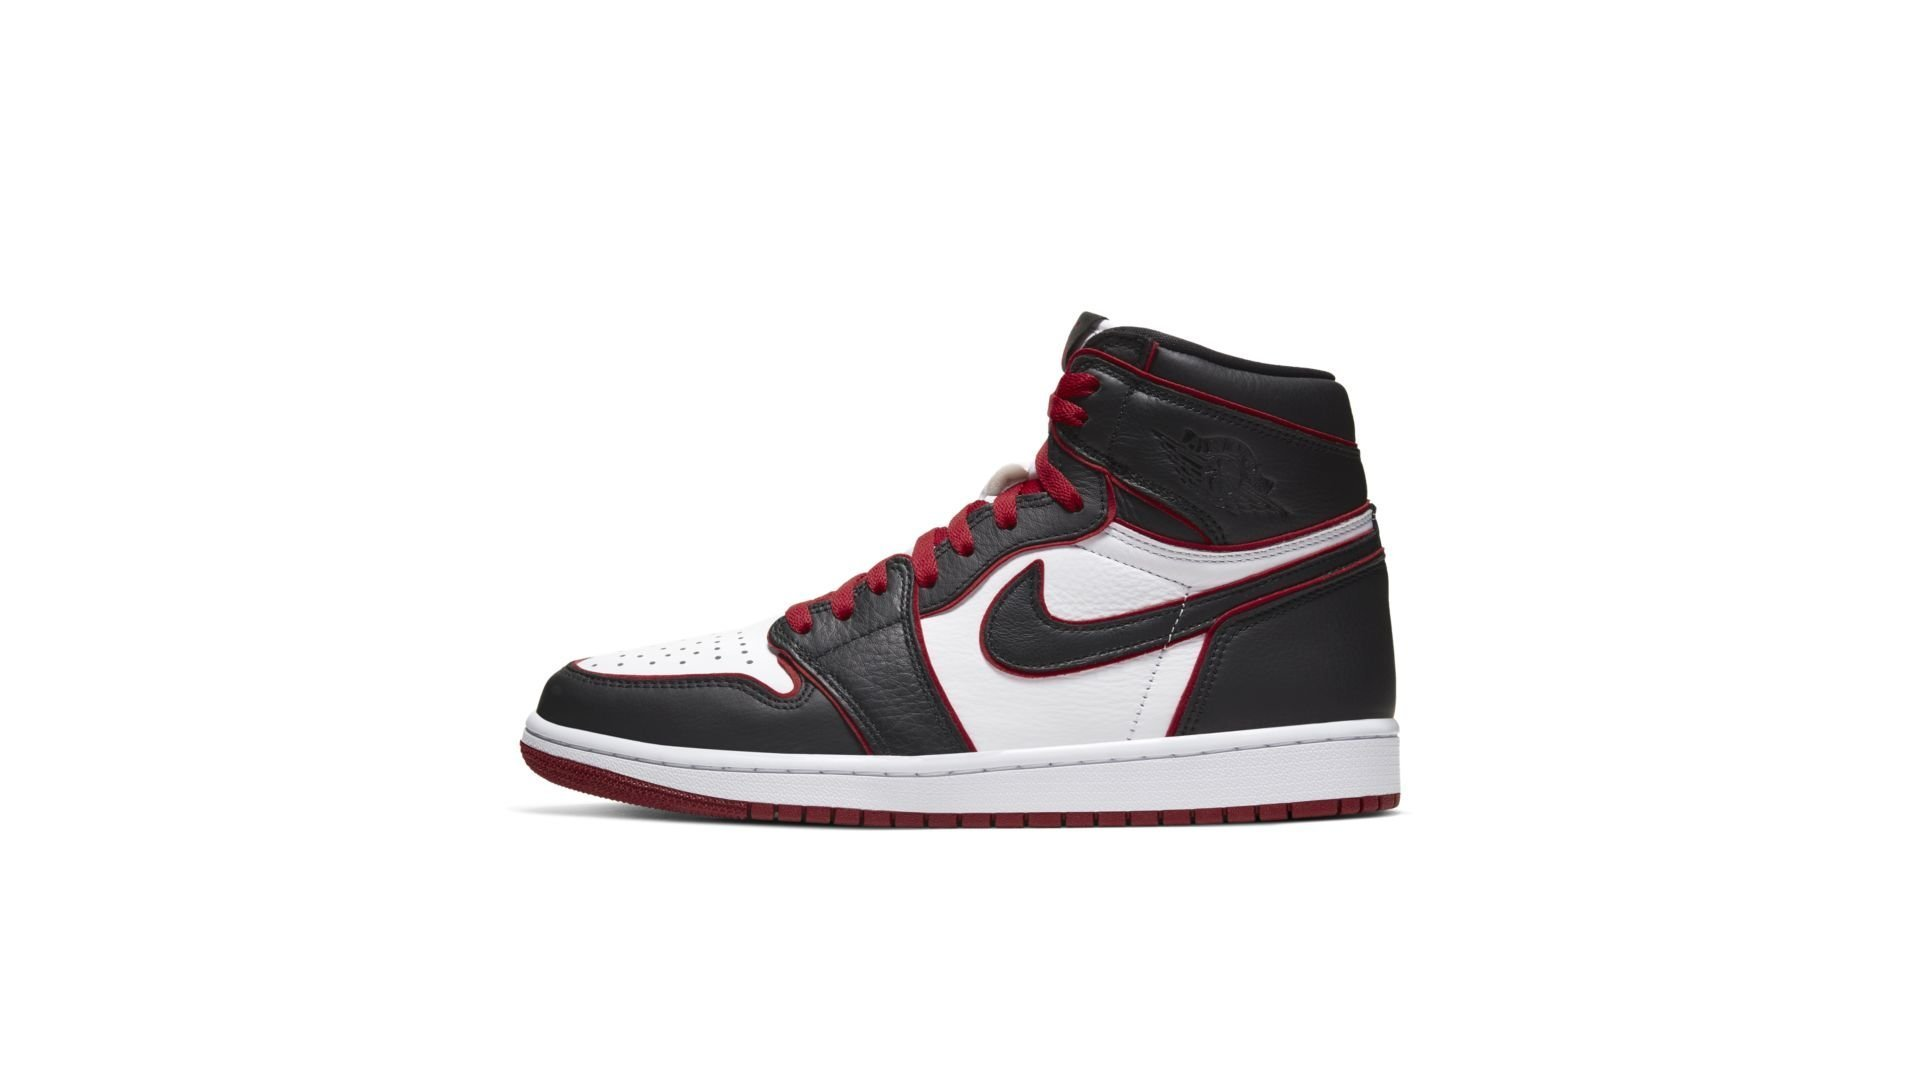 Jordan 1 Retro High Bloodline (555088-062)